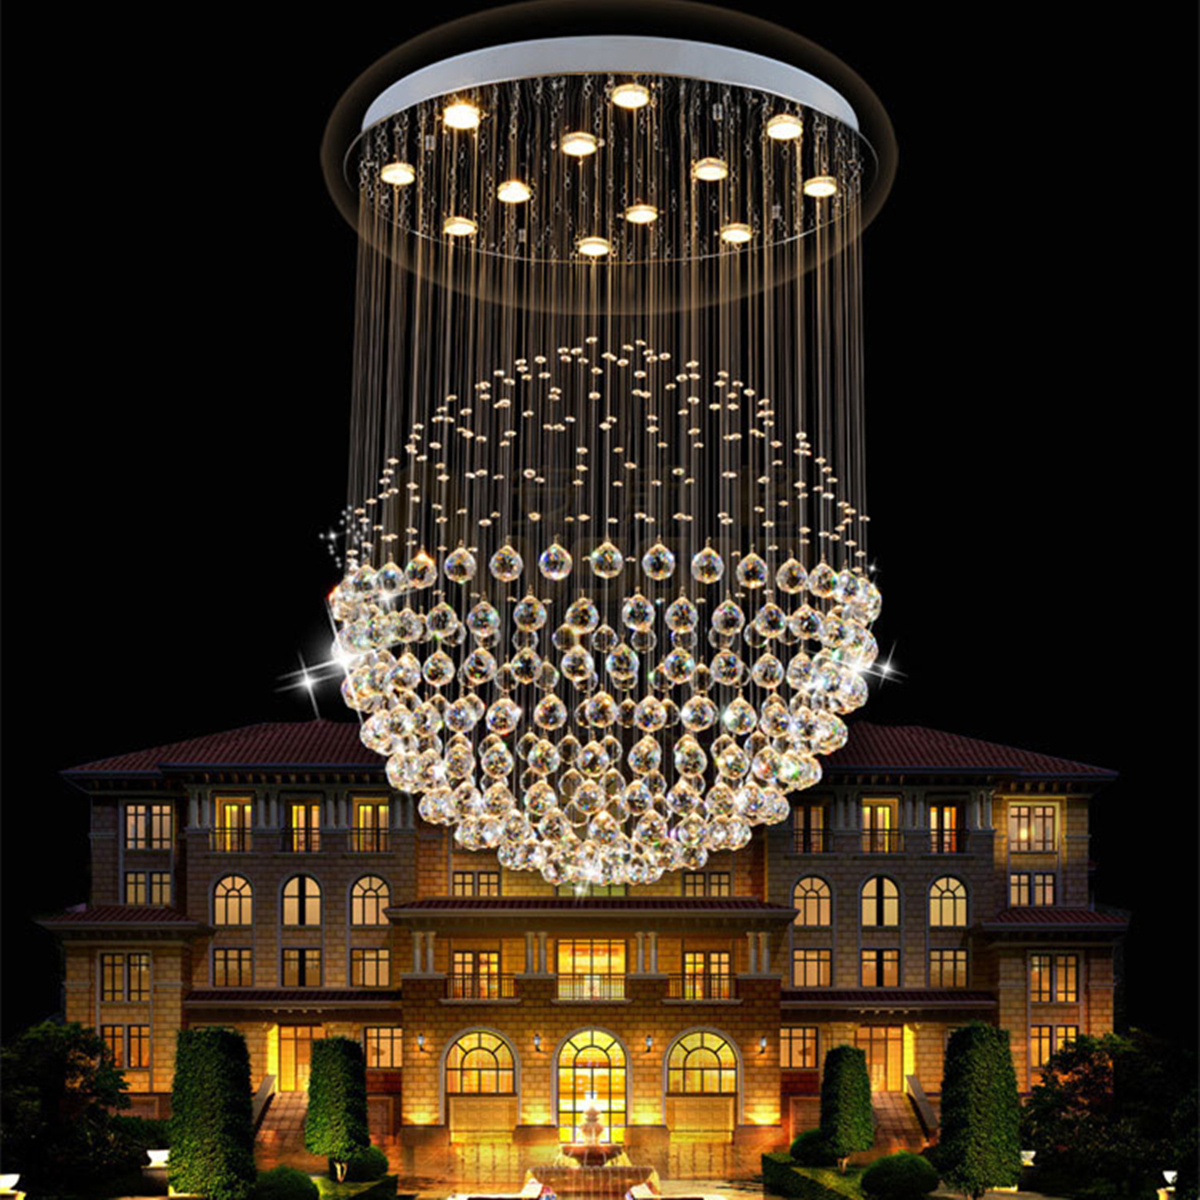 led luxe lampe boule cristal suspension plafonnier lustre luminaire eclairage ebay. Black Bedroom Furniture Sets. Home Design Ideas